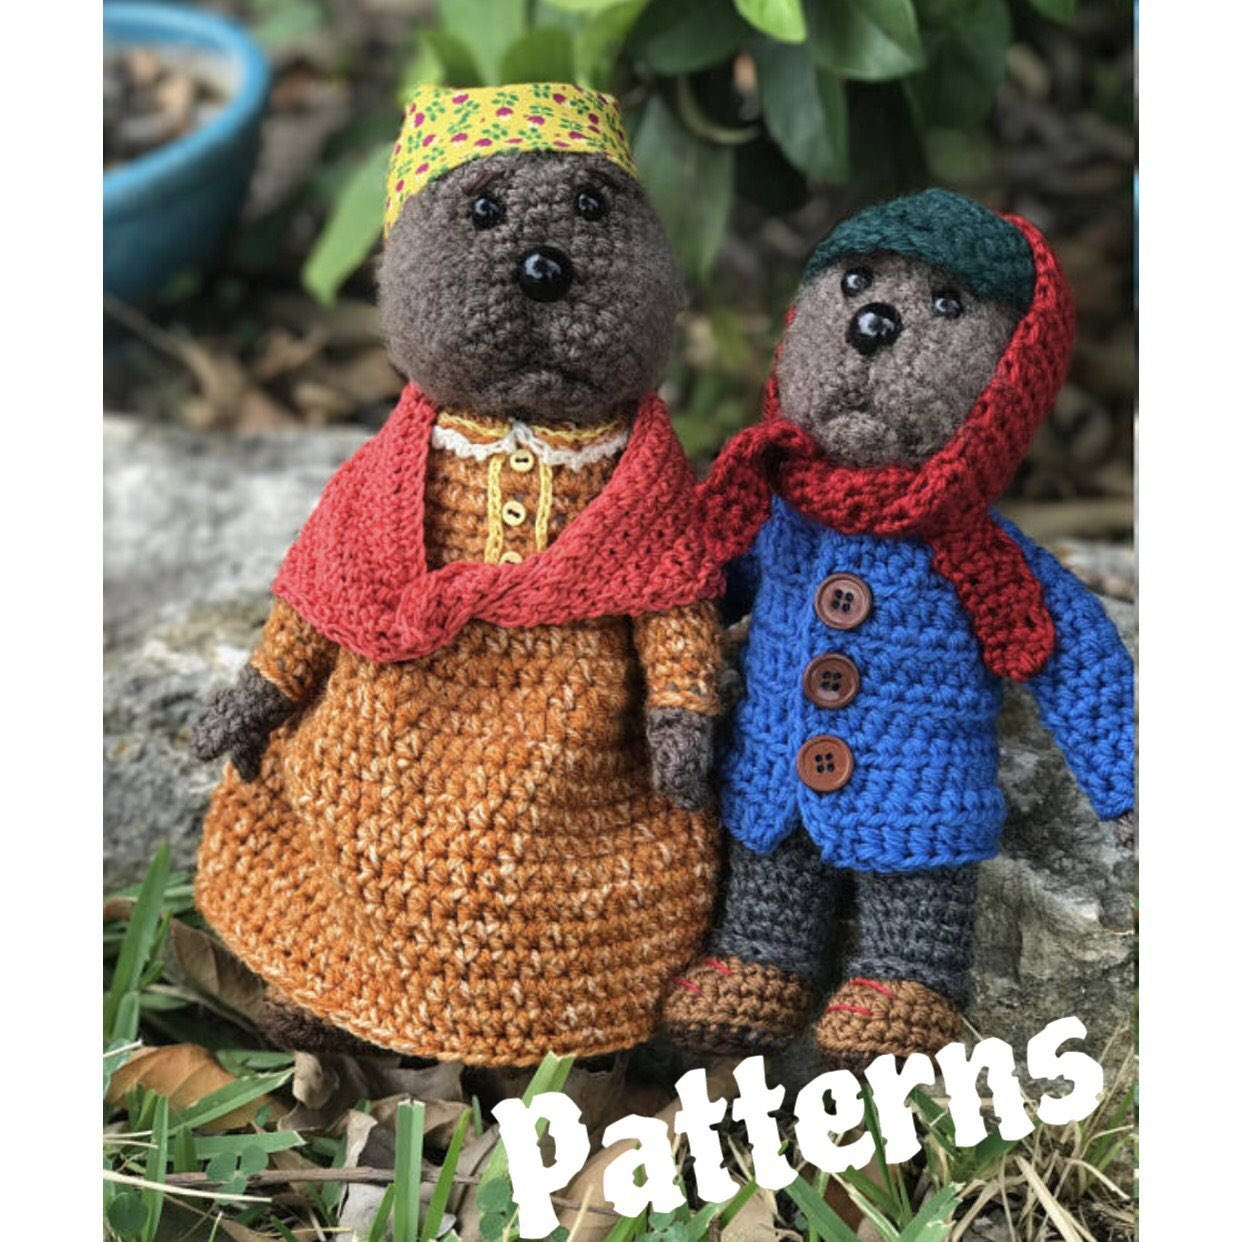 PDFs Emmet Otter Ma Otter Crochet doll PATTERNS set inspired | Etsy